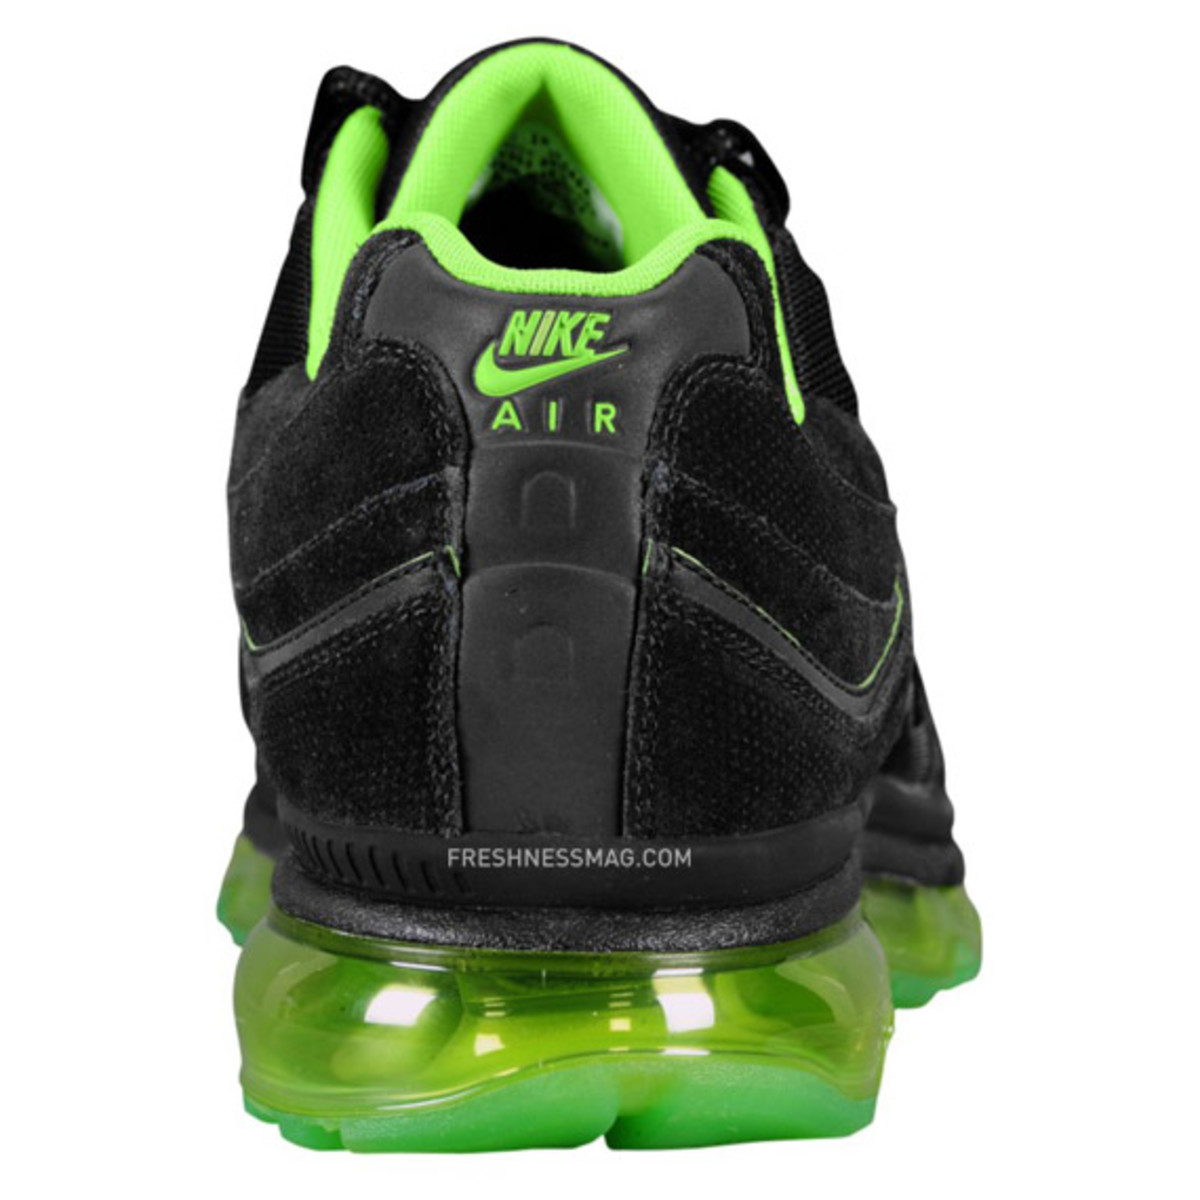 nike-air-max-24-7-air-attack-green-05